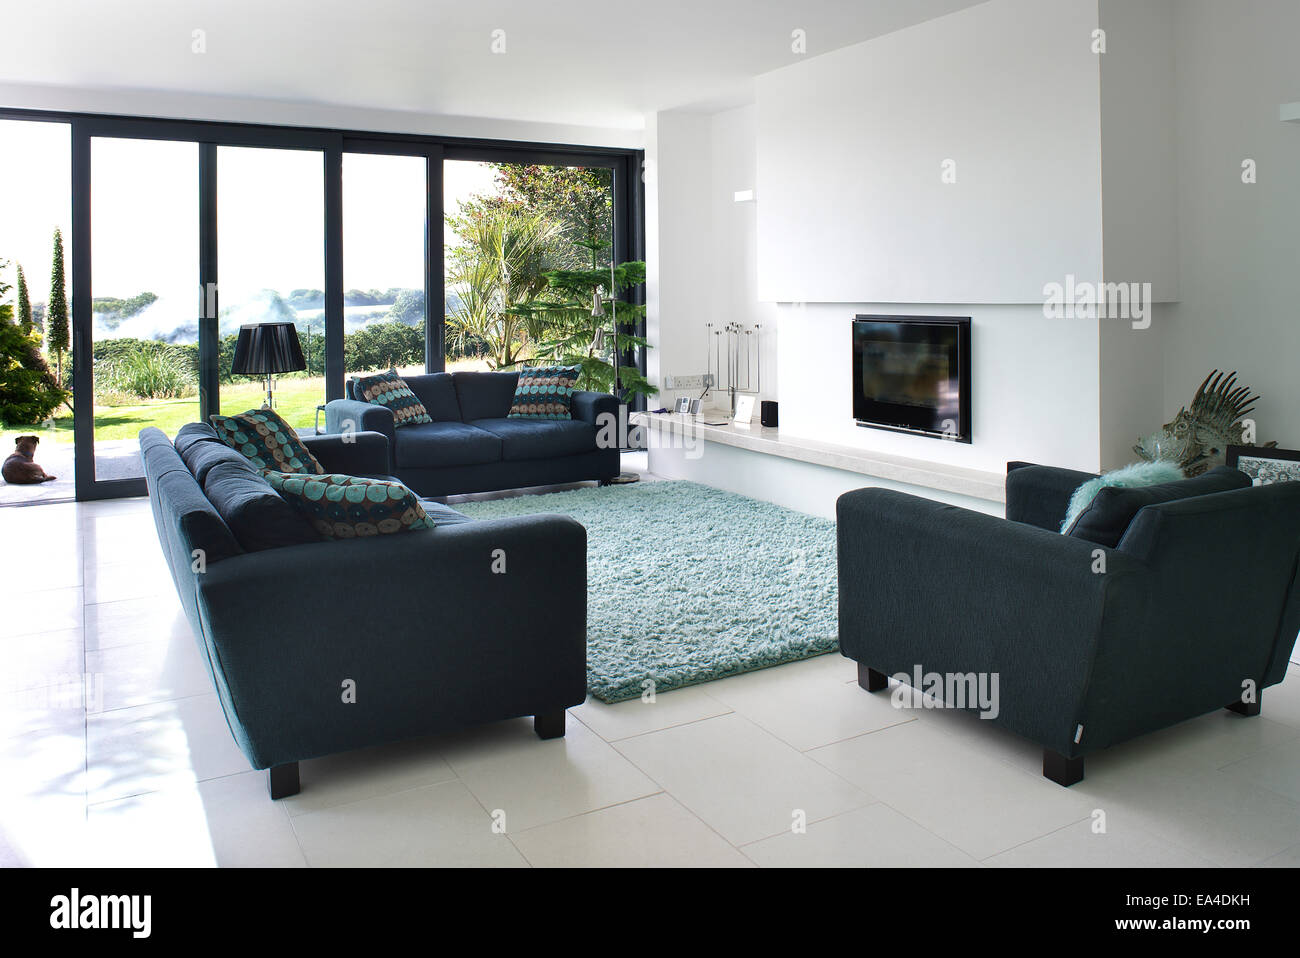 open plan living room with view through patio doors in residential